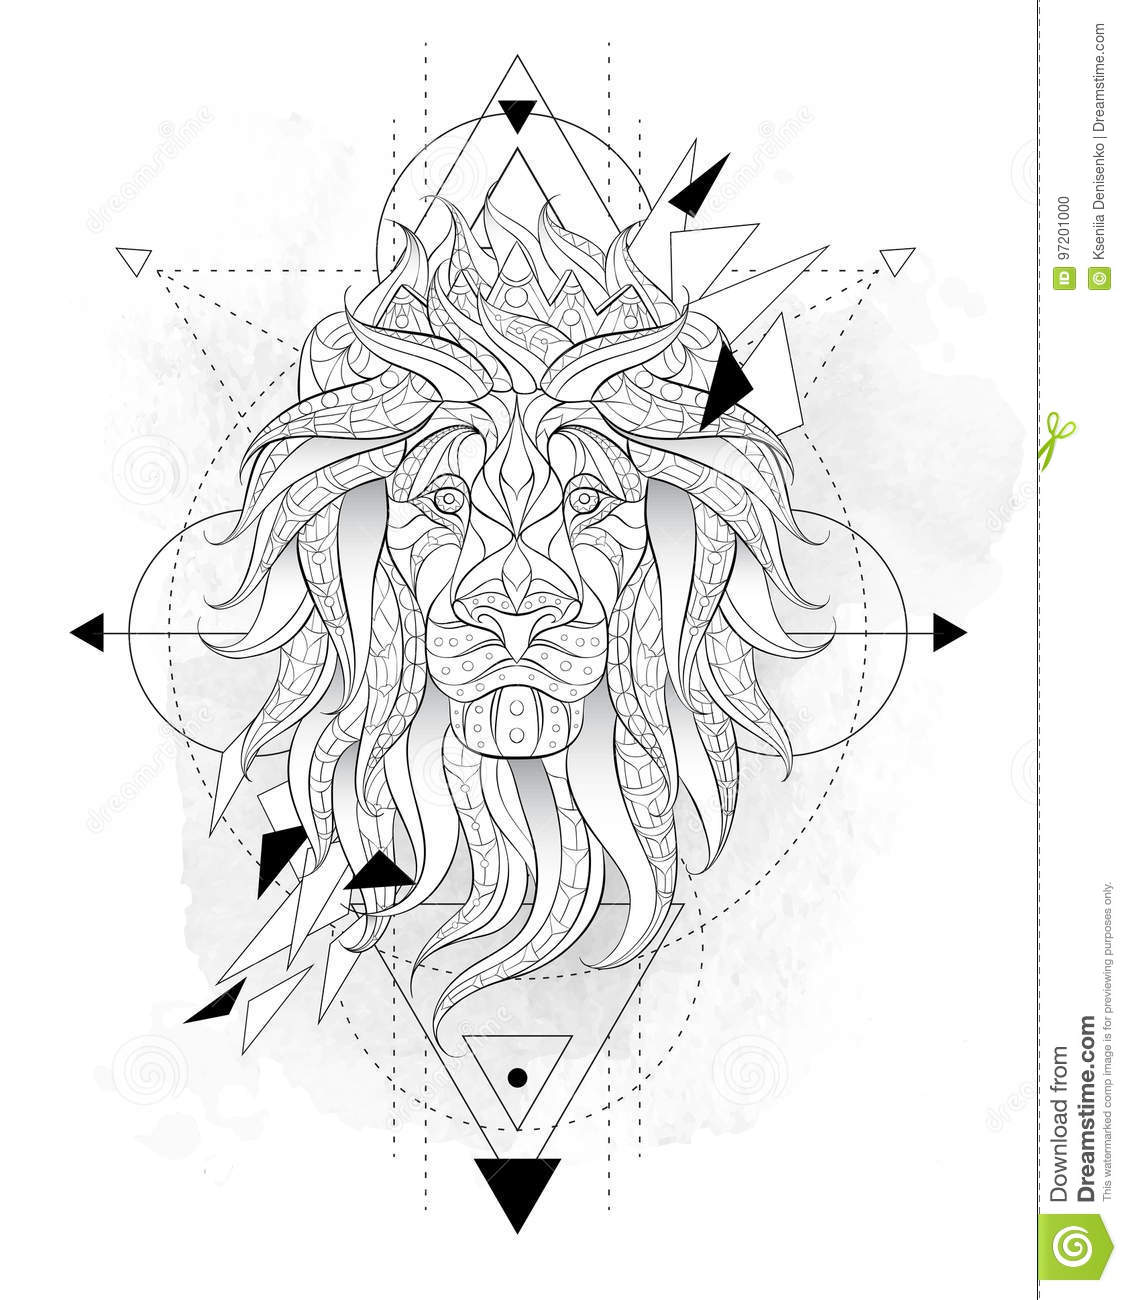 Geometry Lion Stock Illustrations 474 Geometry Lion Stock Illustrations Vectors Clipart Dreamstime They aren't called the king of the jungle for nothing. https www dreamstime com stock illustration patterned head lion geometry grunge background leo crown african indian totem tattoo design may be used image97201000